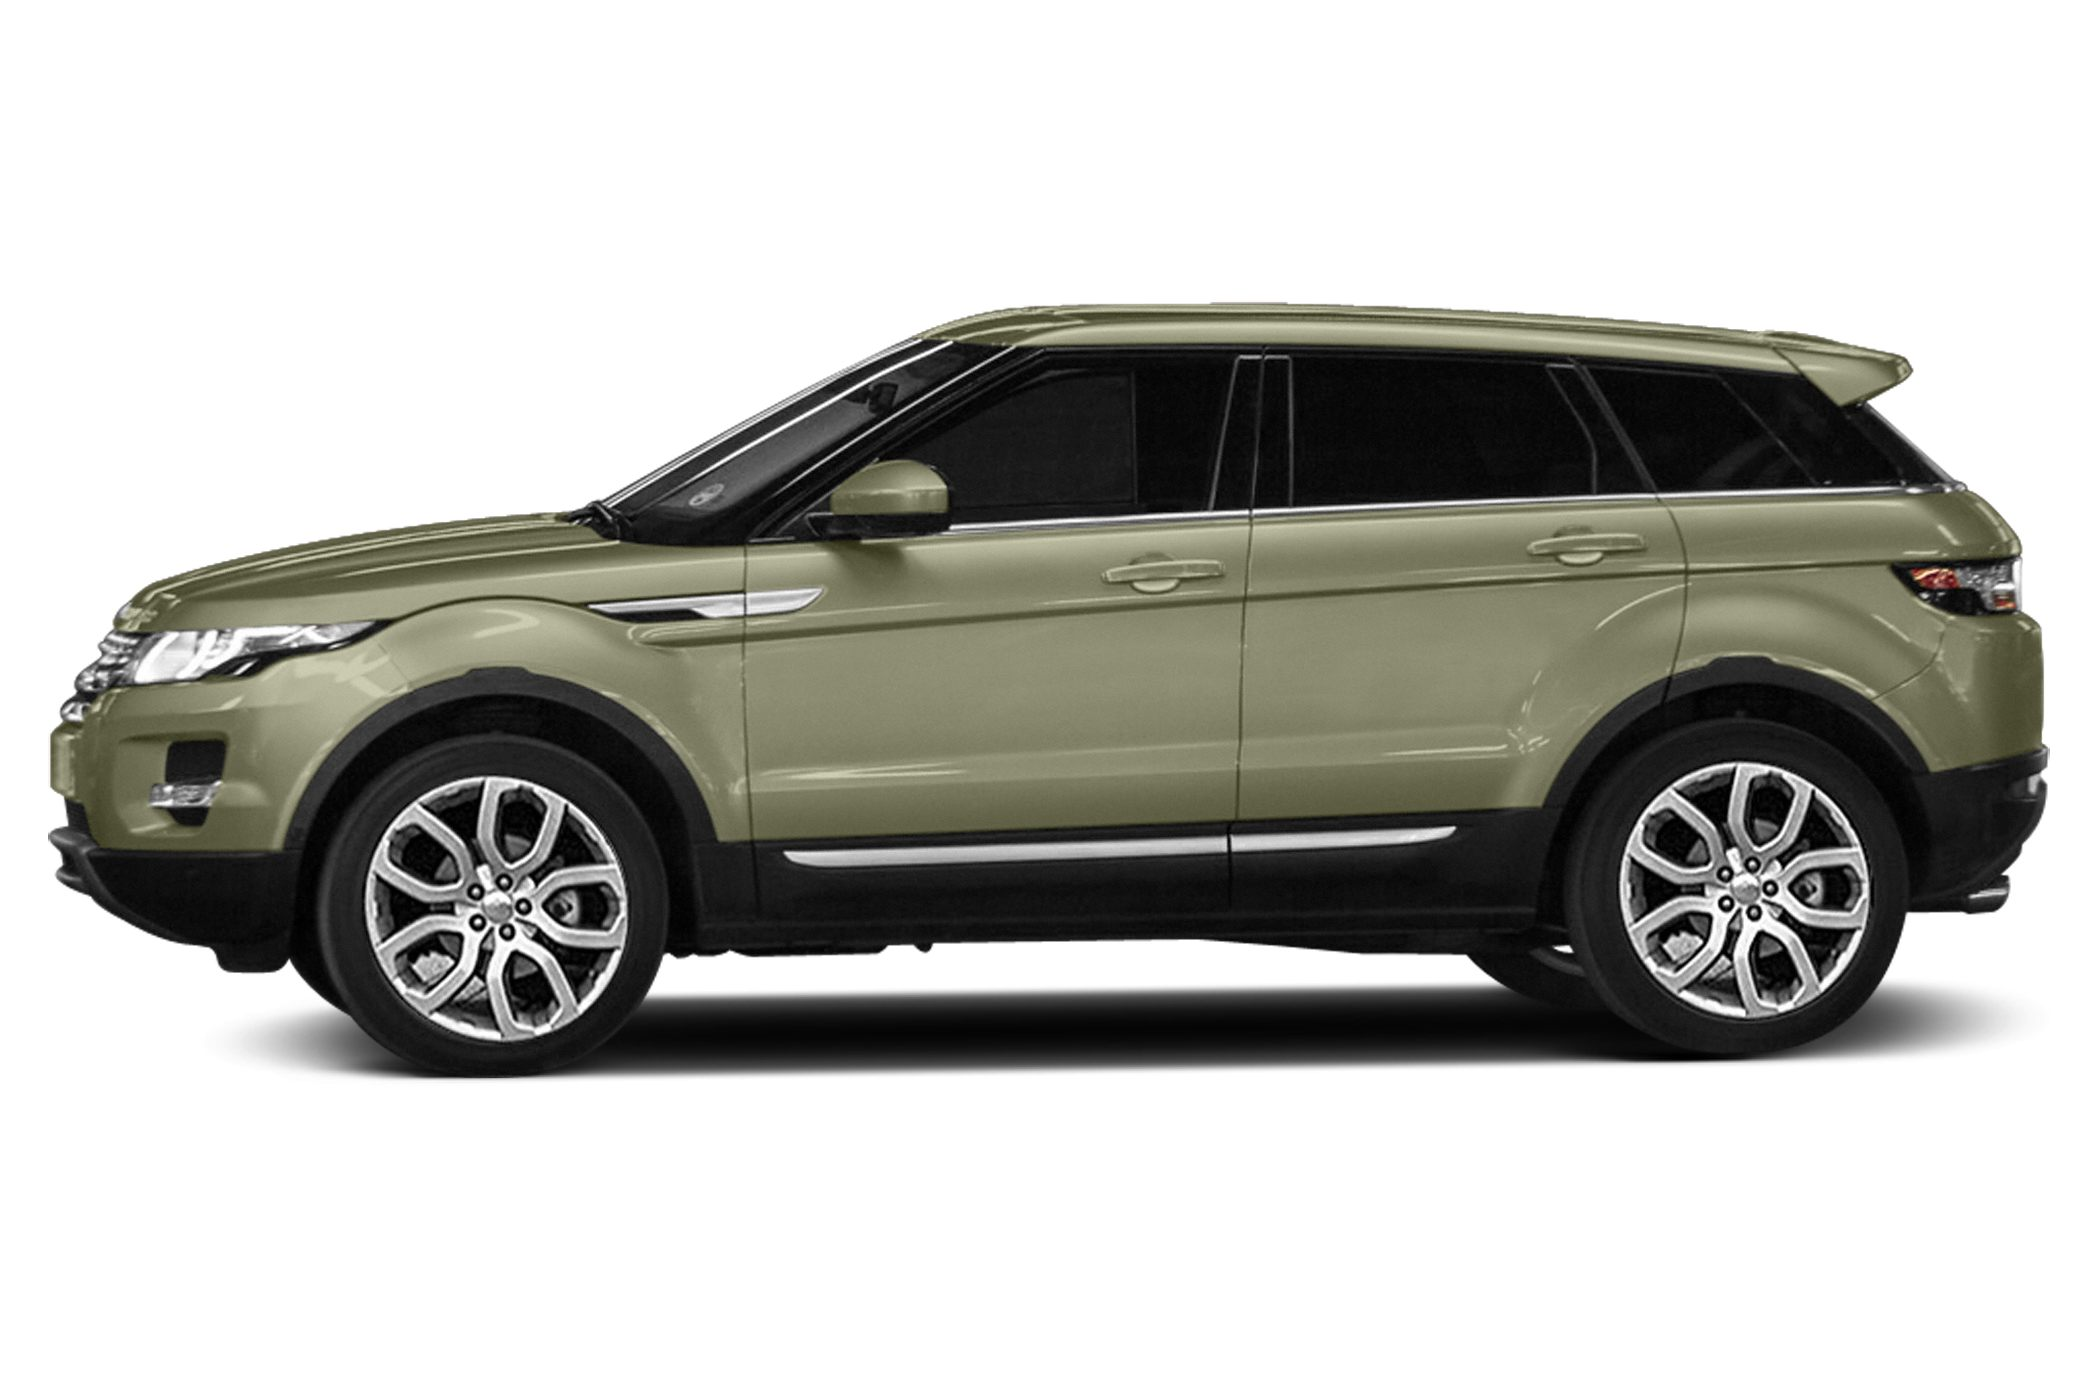 New 2014 Land Rover Range Rover Evoque Price, Photos, Reviews free image download Wallpaper